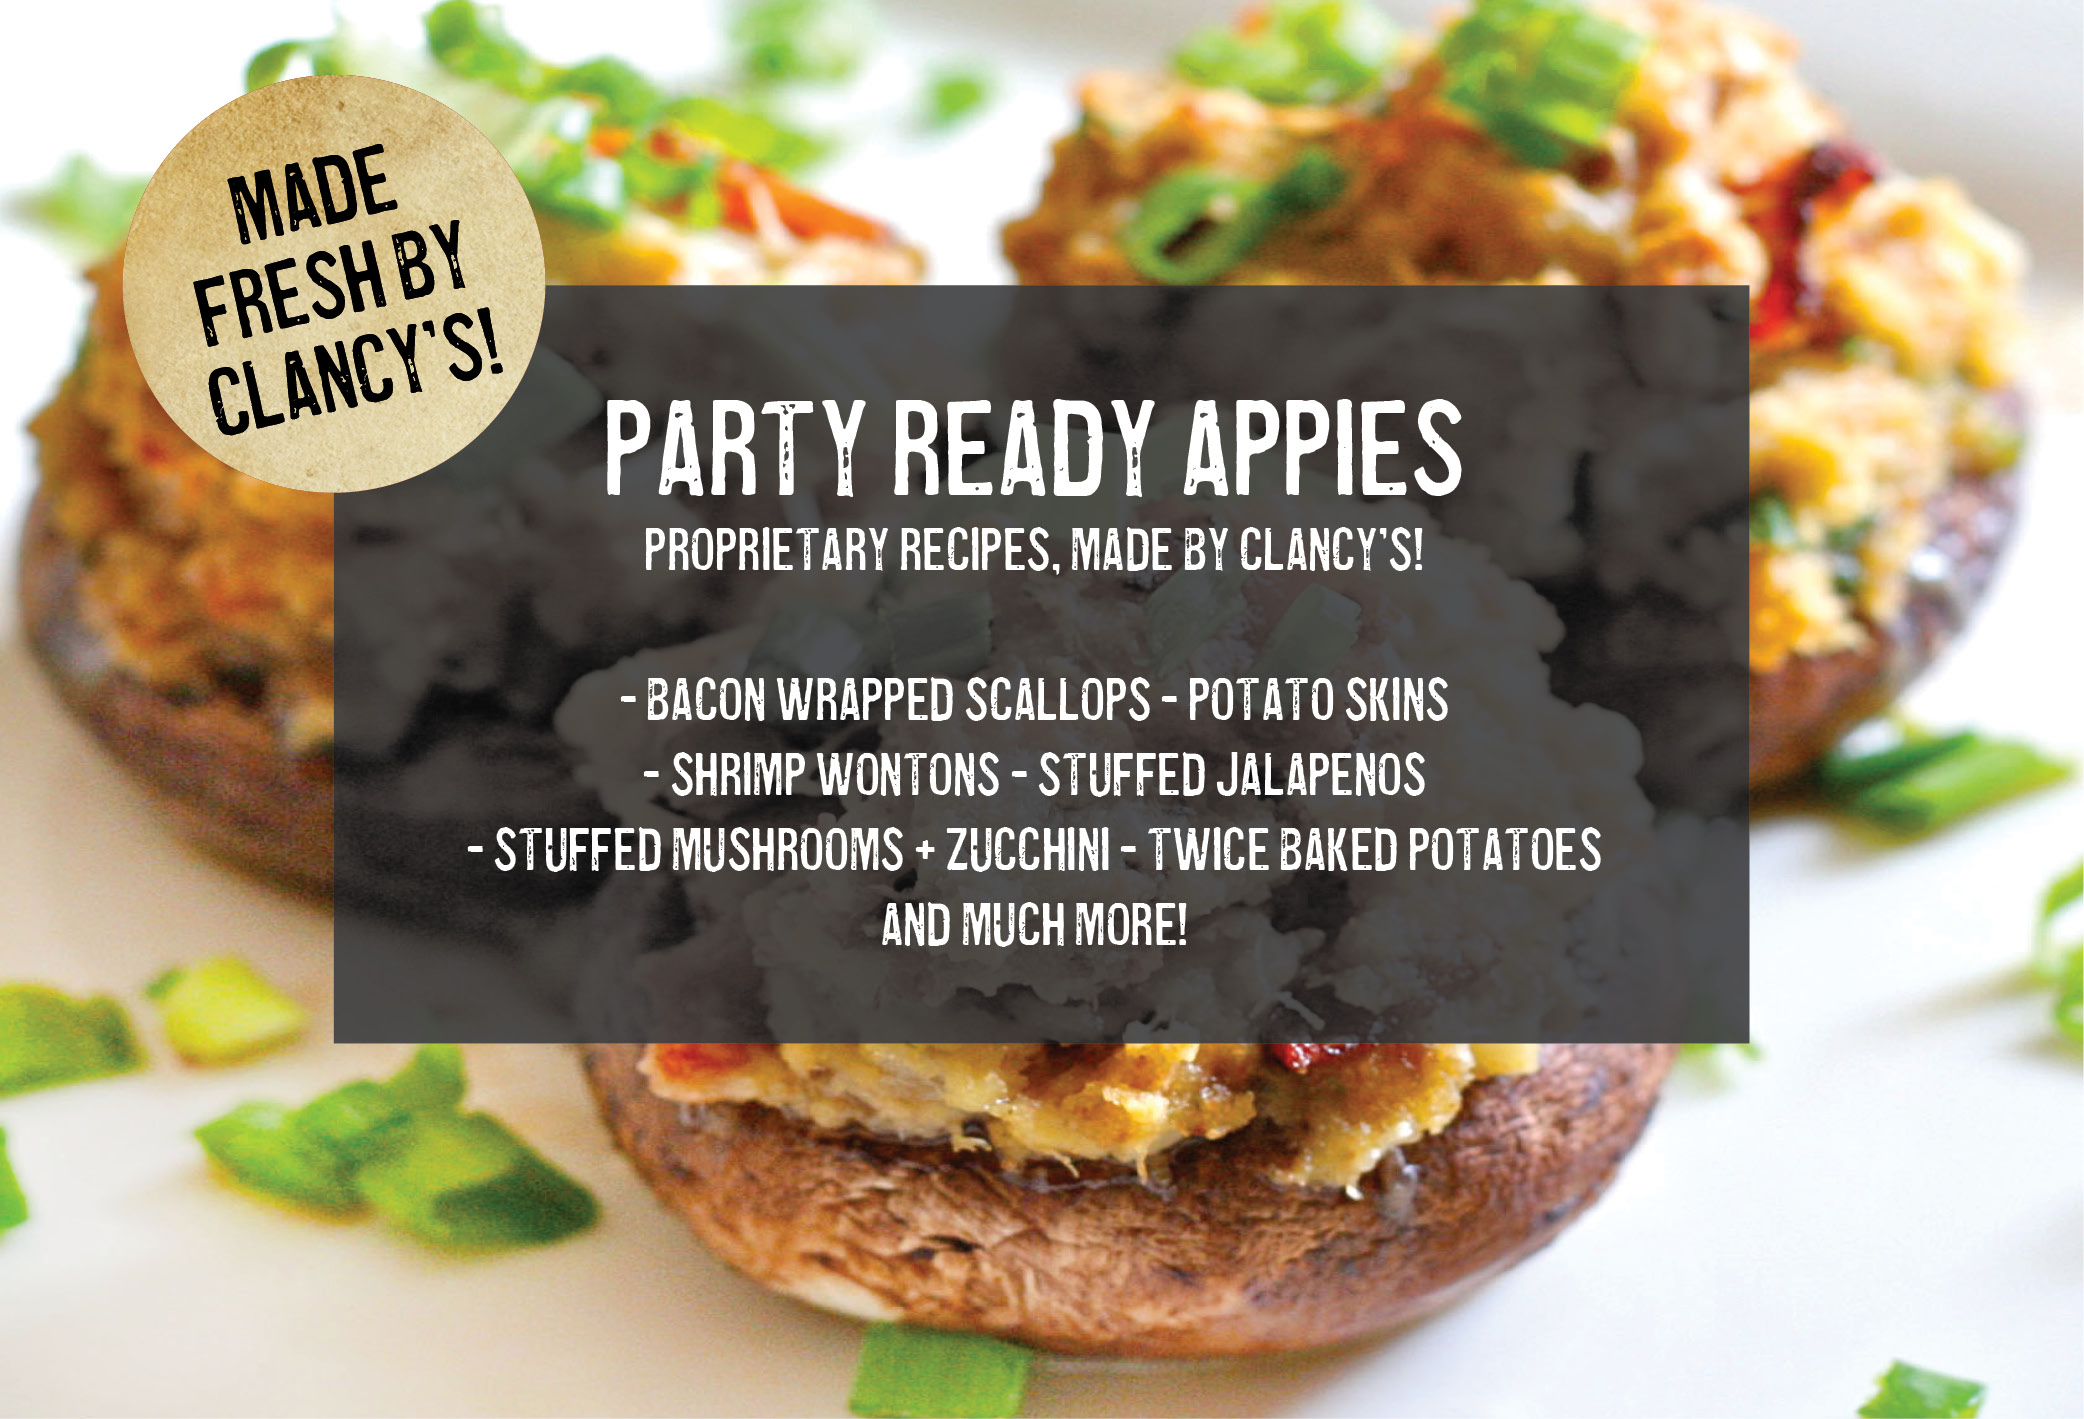 Party Ready Appies Products.jpg